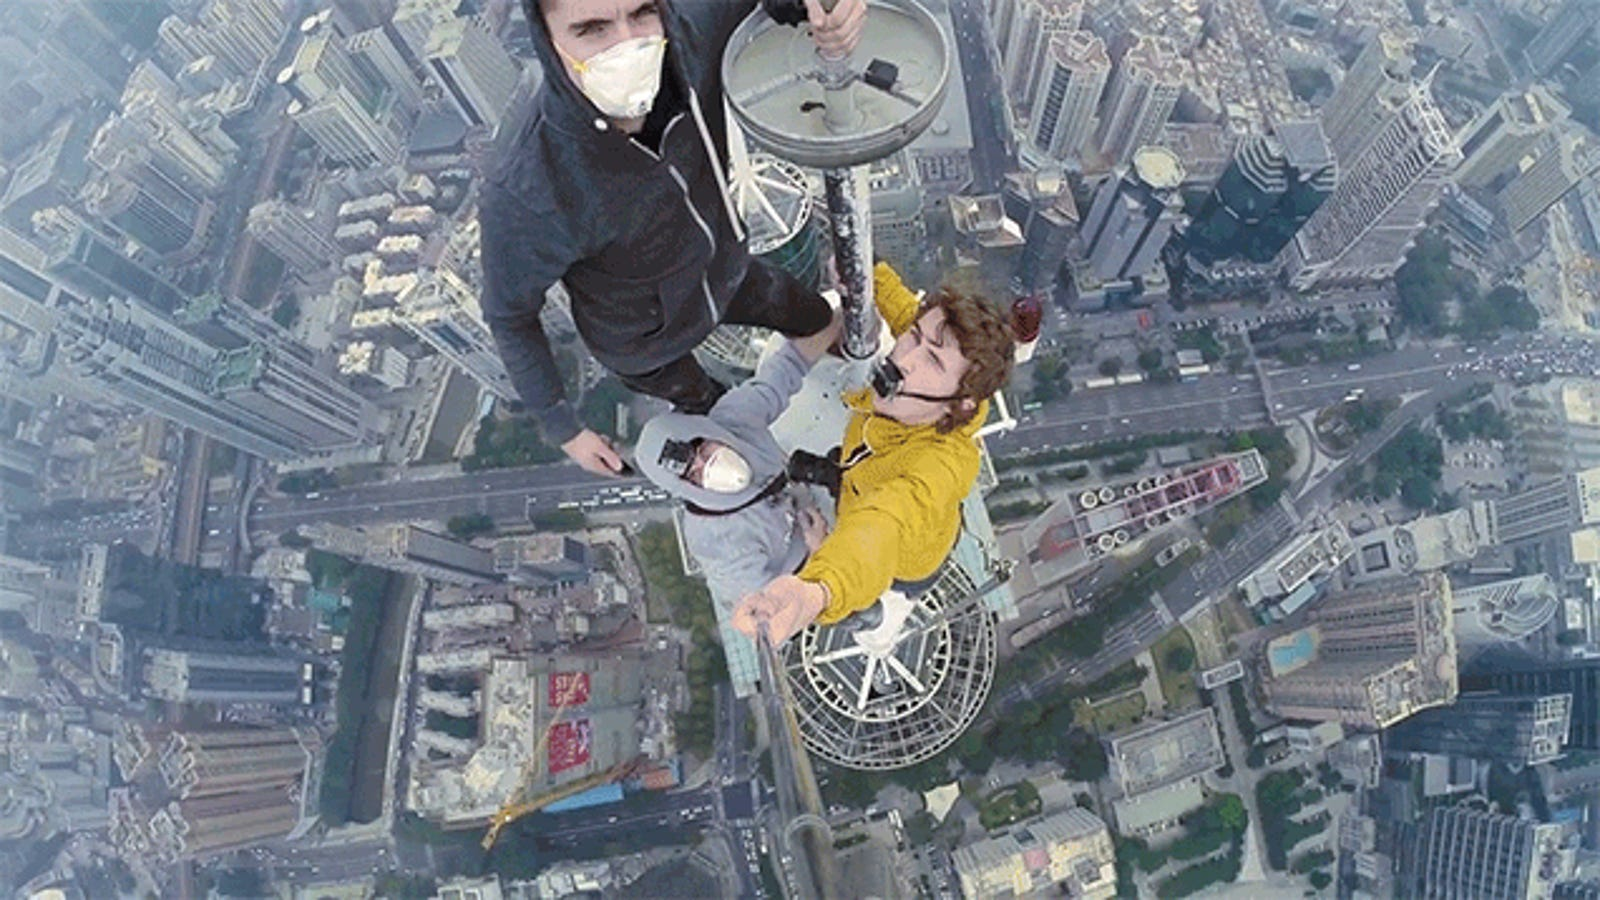 This Video of People Climbing a Skyscraper Is So Damn Stressful